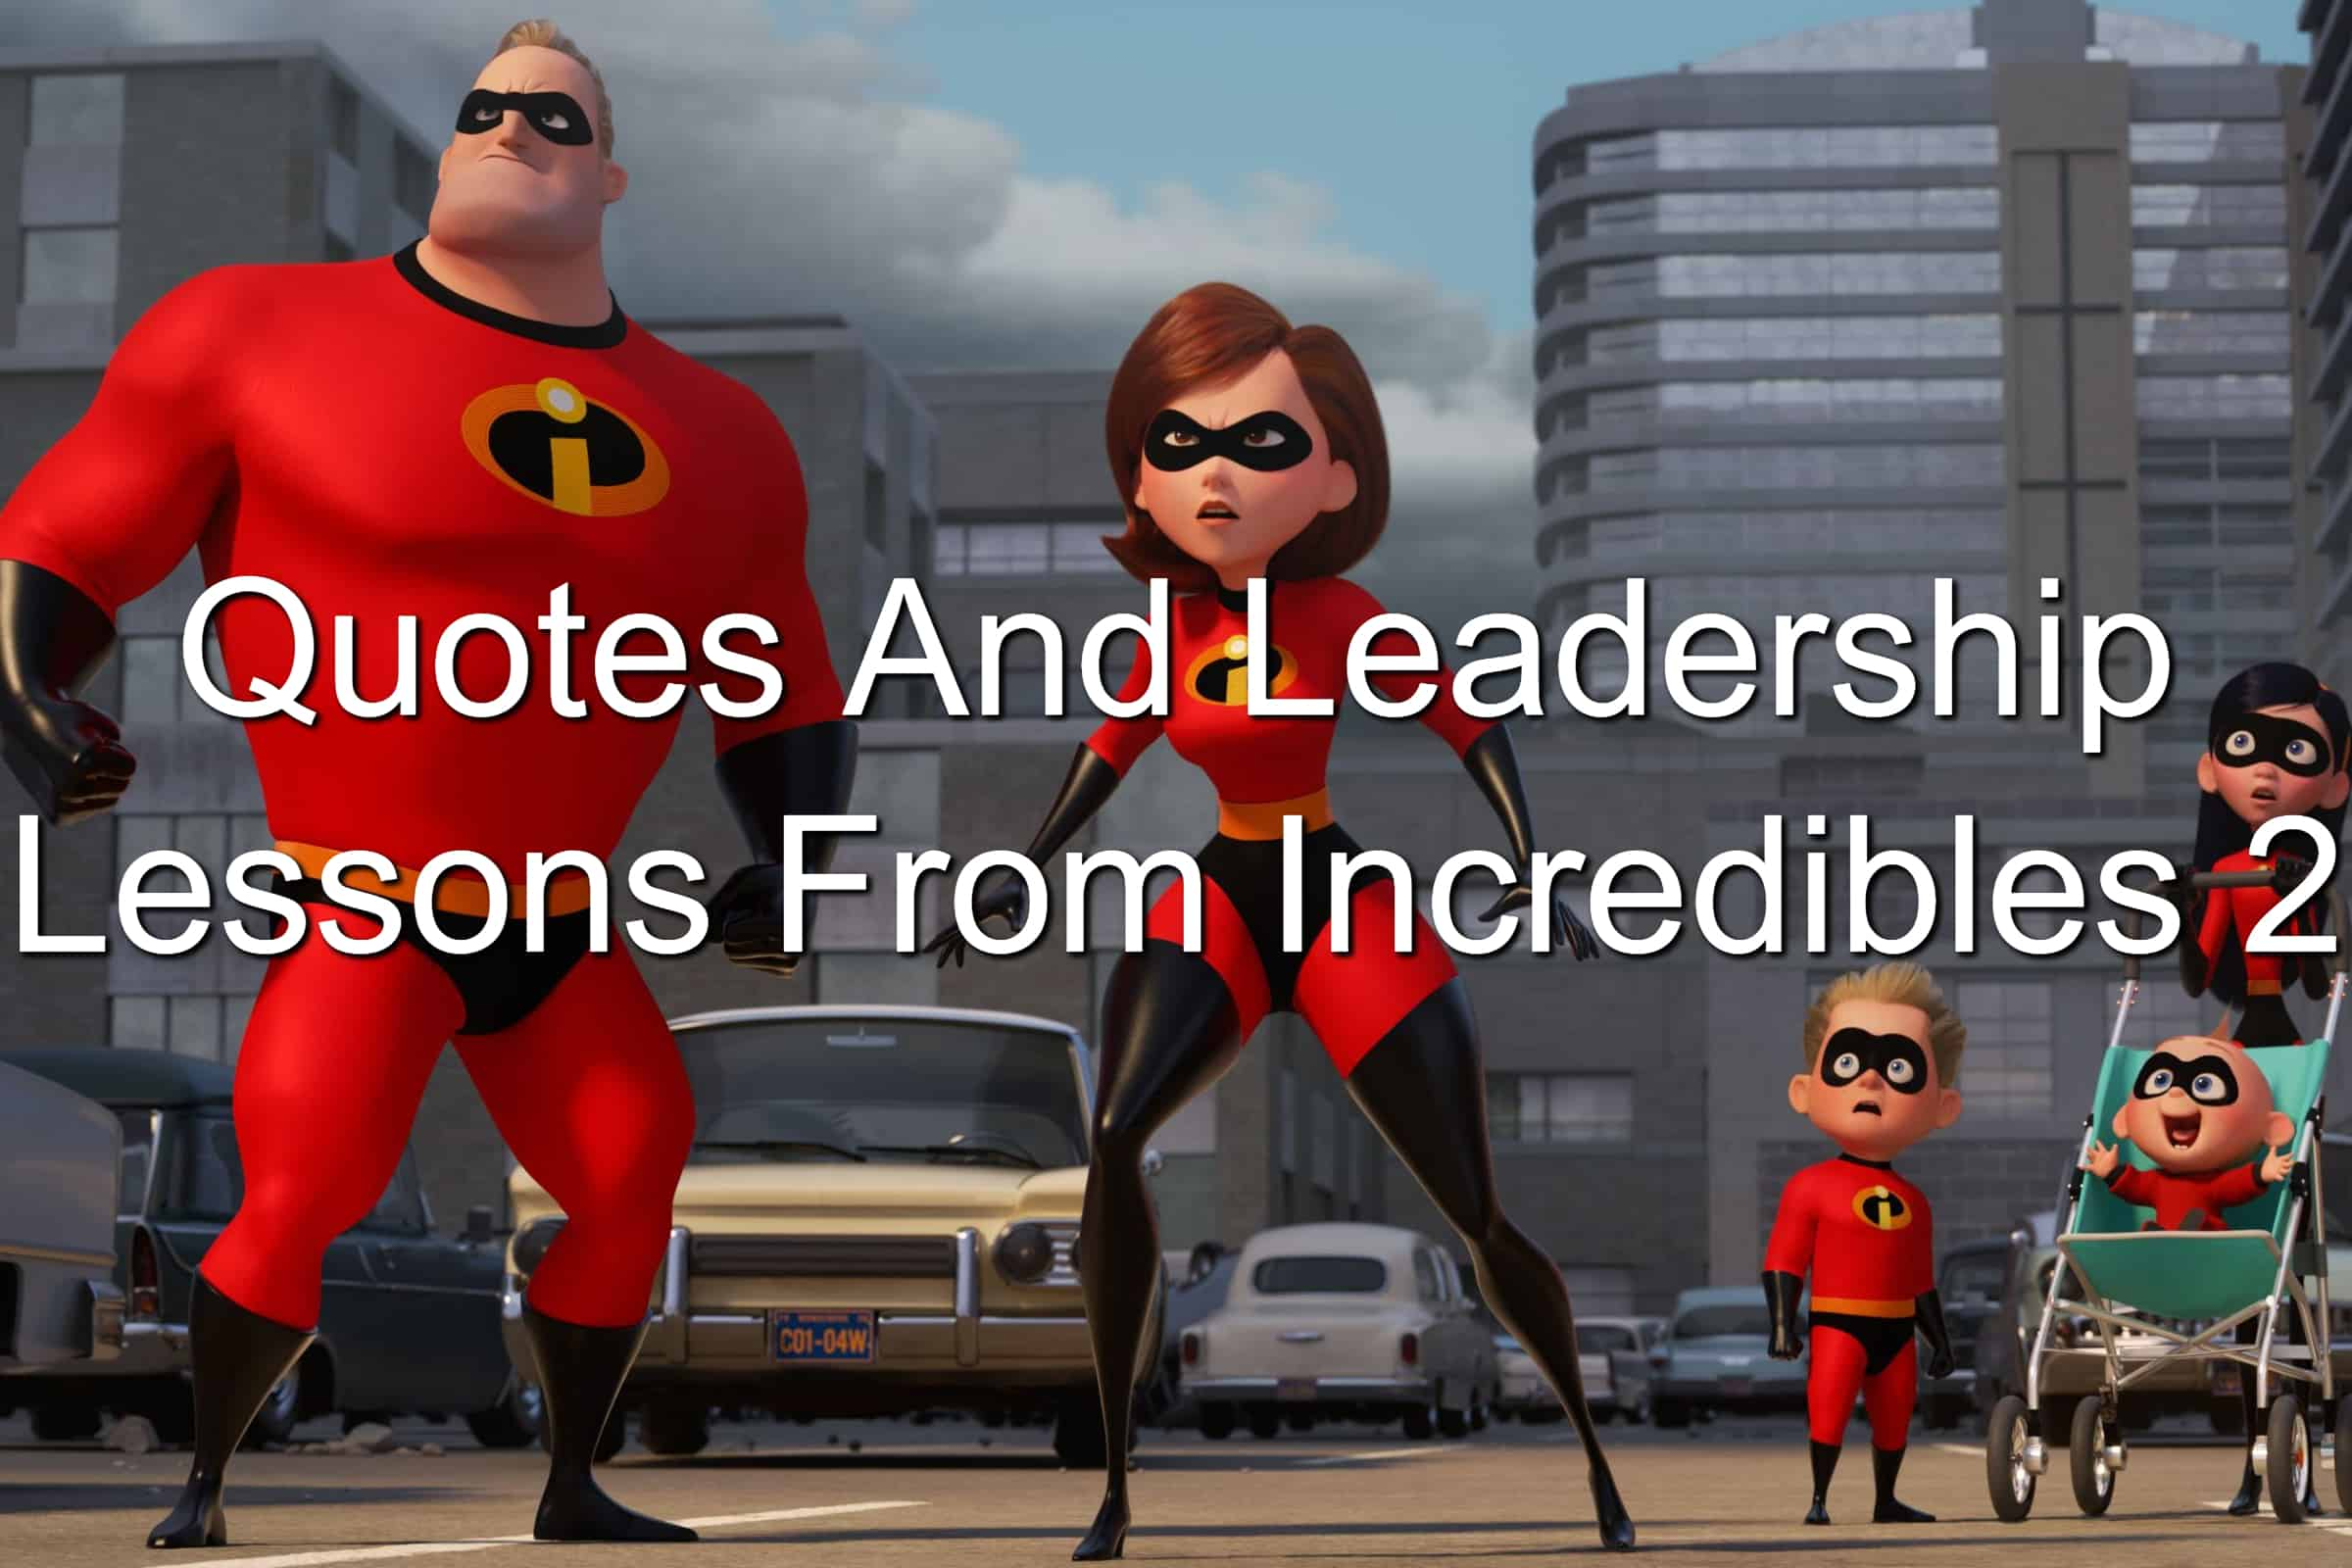 Leadership Lessons From Incredibles 2